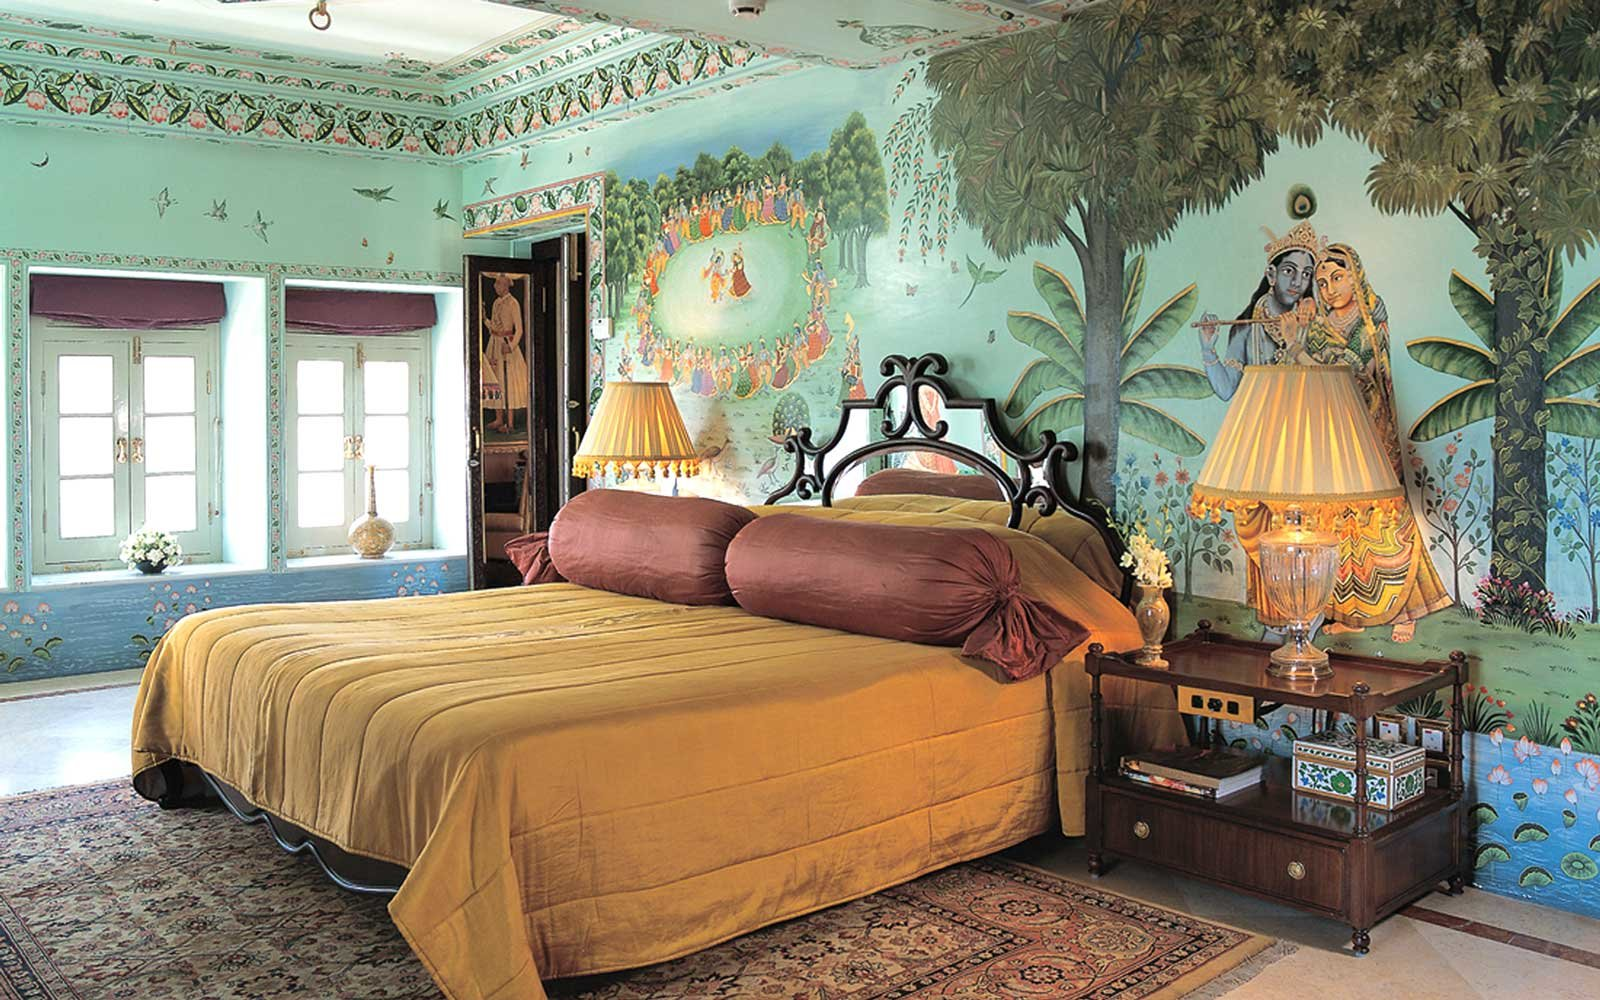 Bedroom at the Taj Lake Palace